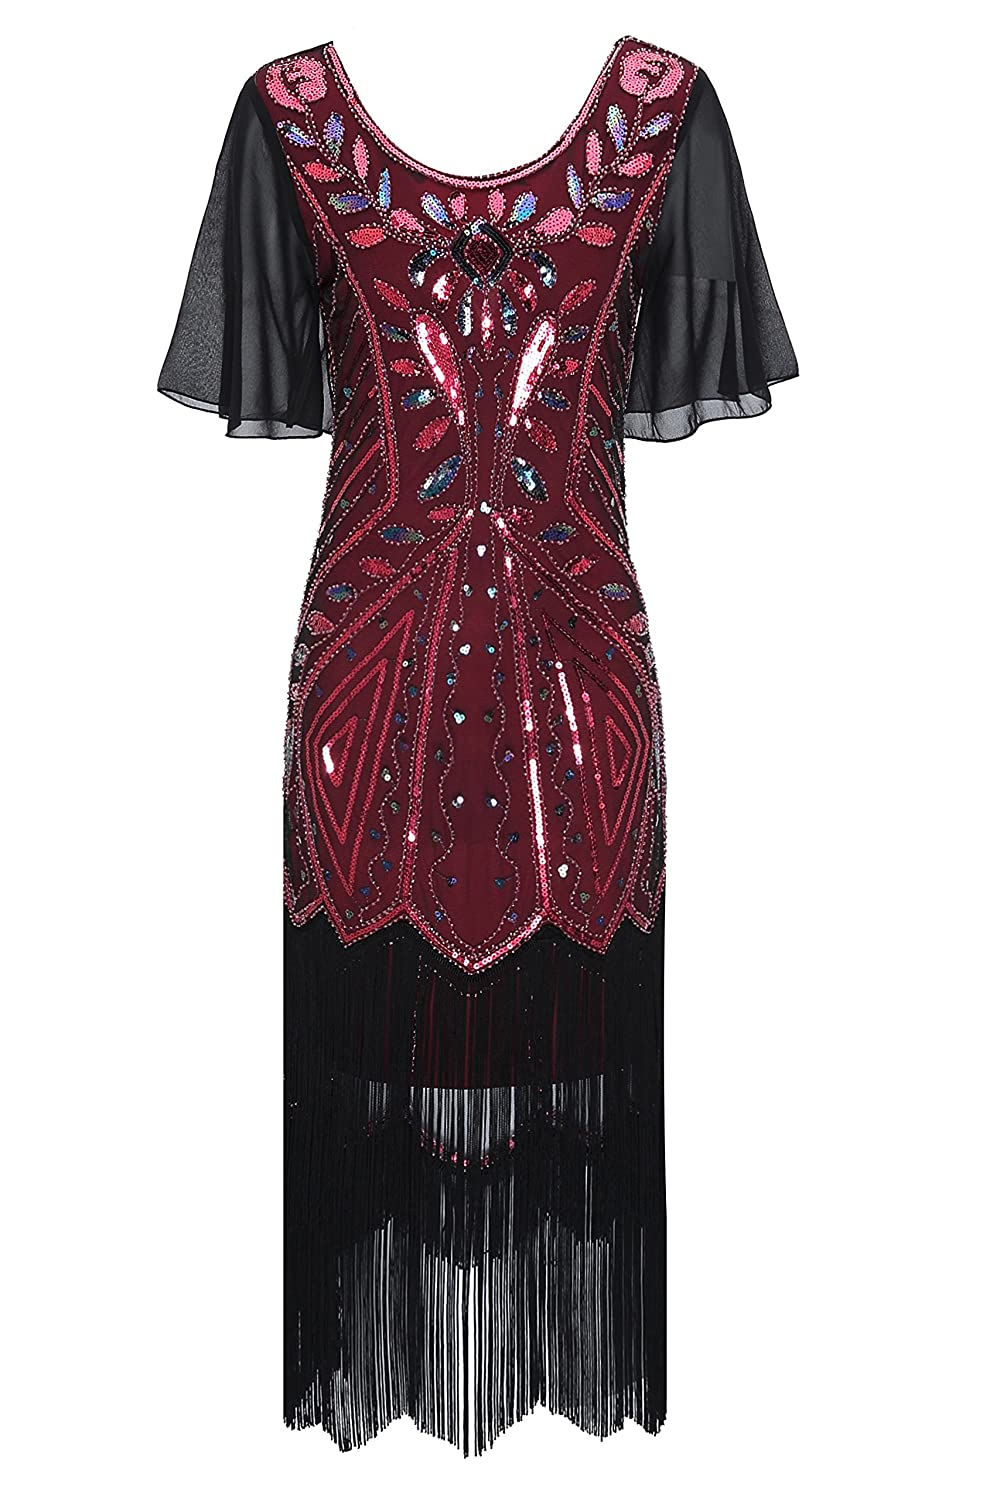 e000f585300 Metme Women s 1920s Great Gatsby Retro Style Fringed Sequin Sleeve Flapper  Cocktail Party Dress at Amazon Women s Clothing store